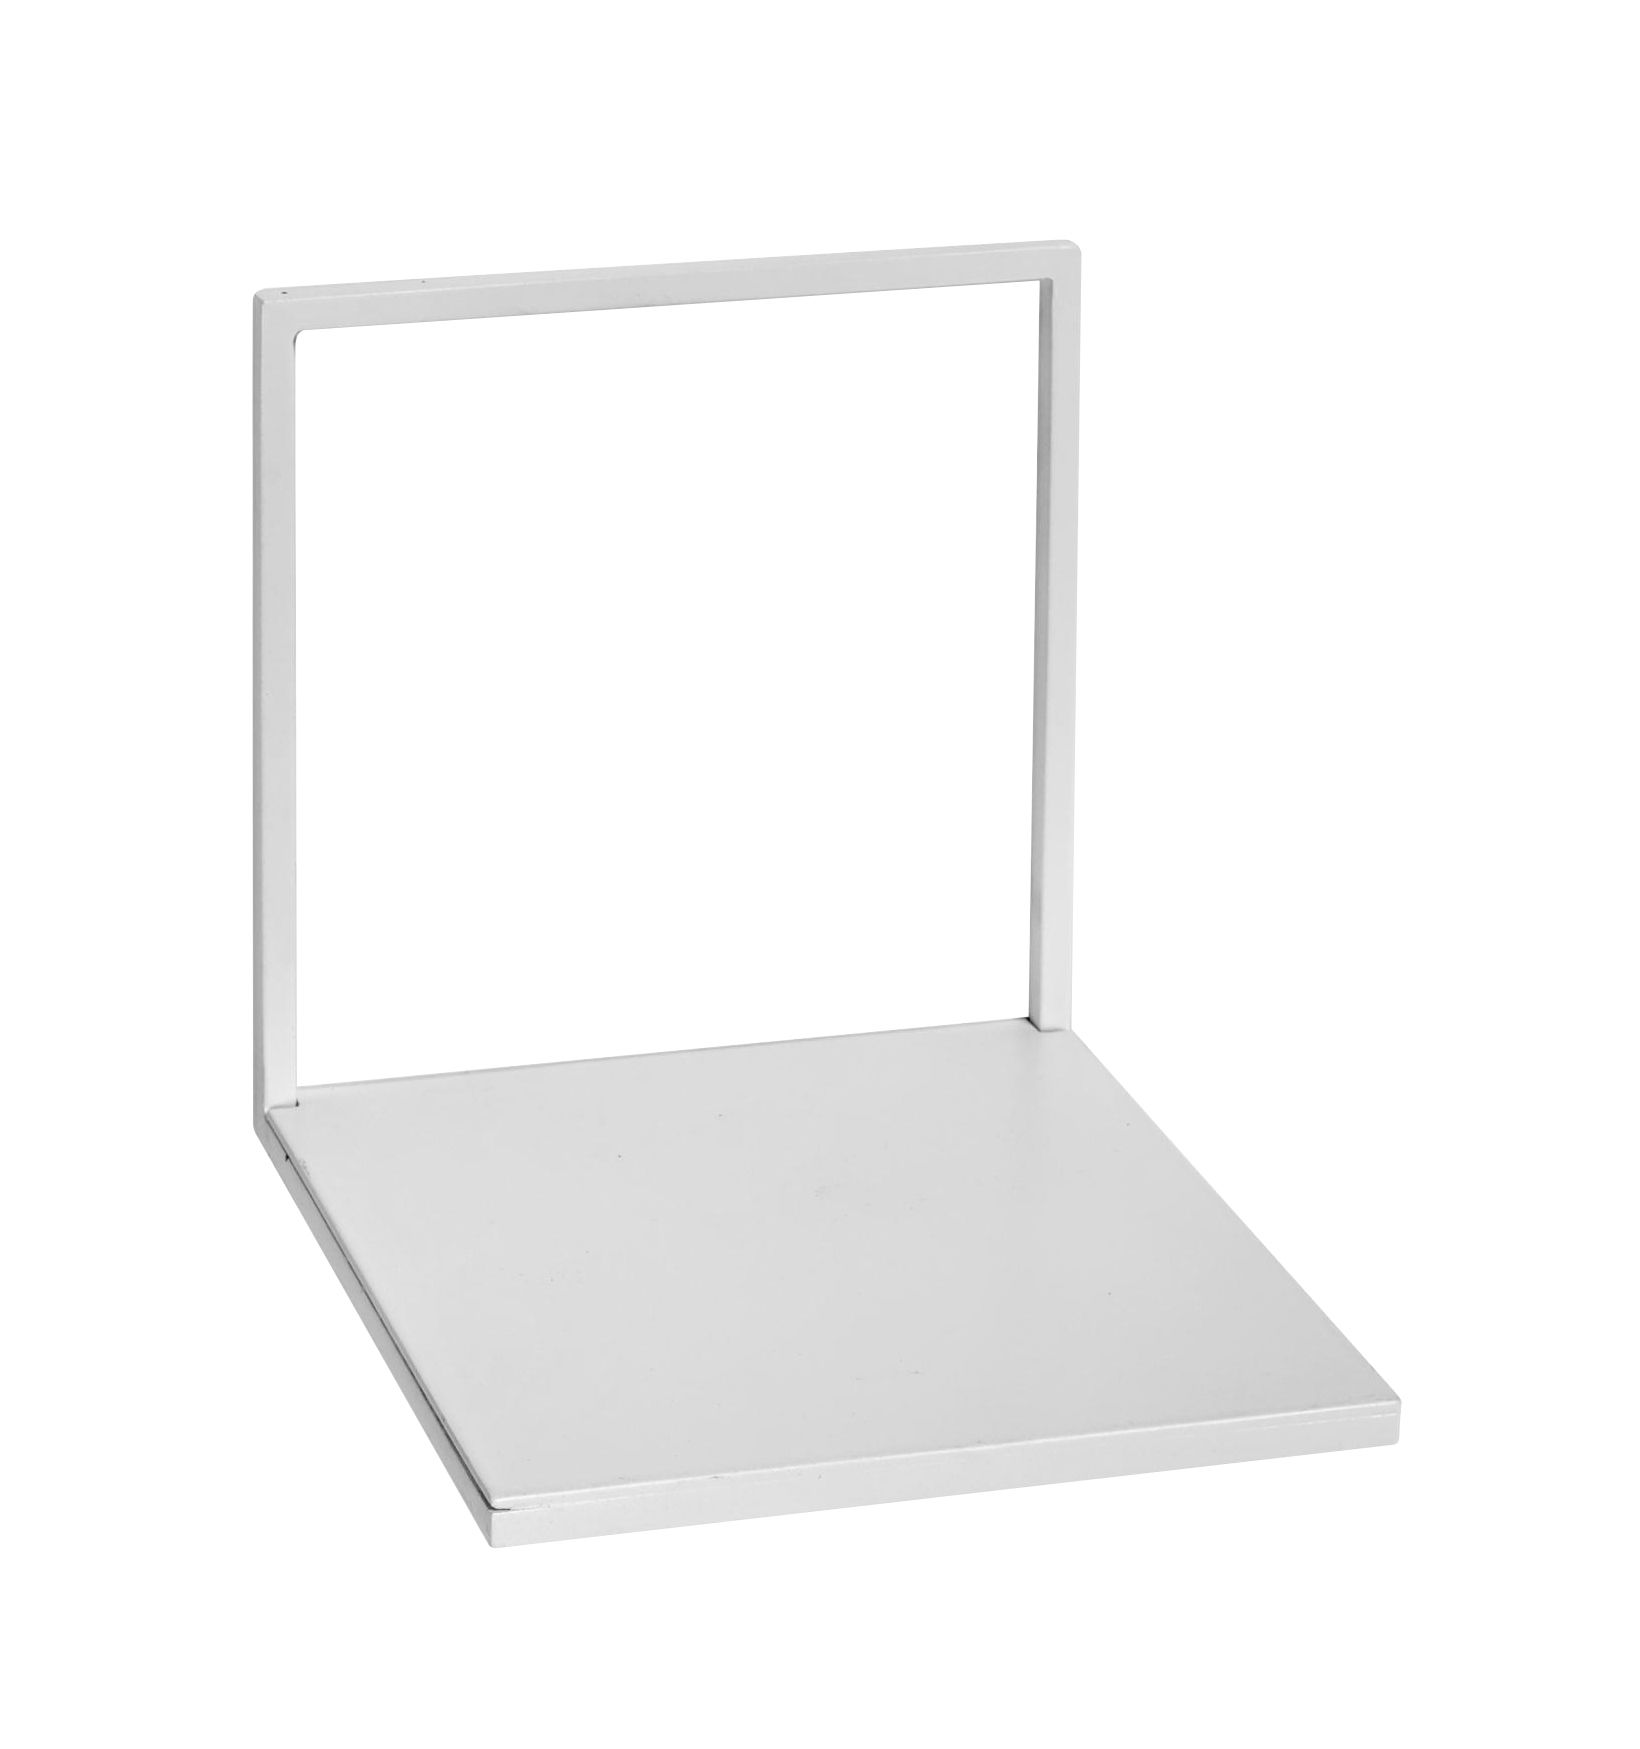 Furniture - Bookcases & Bookshelves - Small Shelf - / L 15 cm - Metal by Serax - White - Lacquered metal